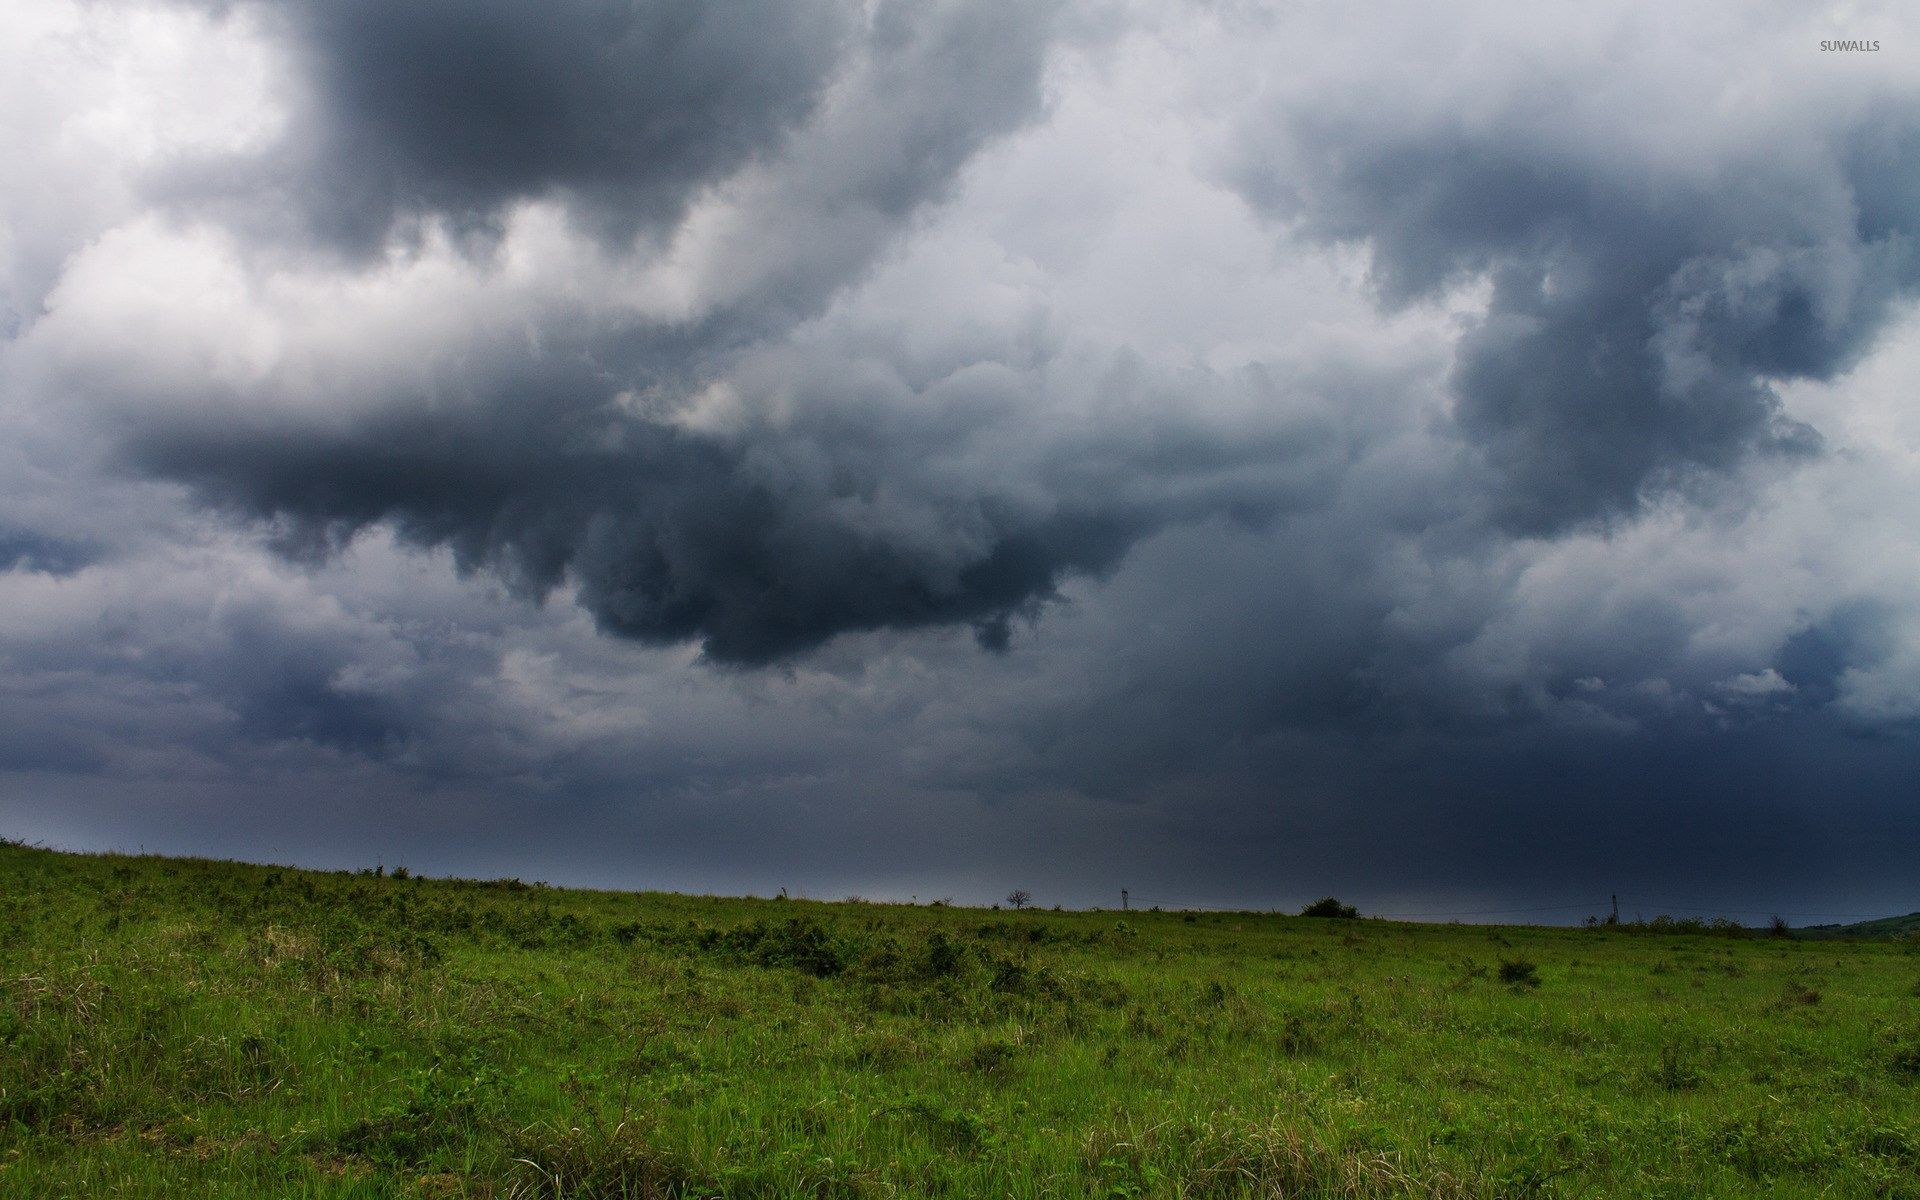 #56726, storm clouds category - hd wallpaper storm clouds